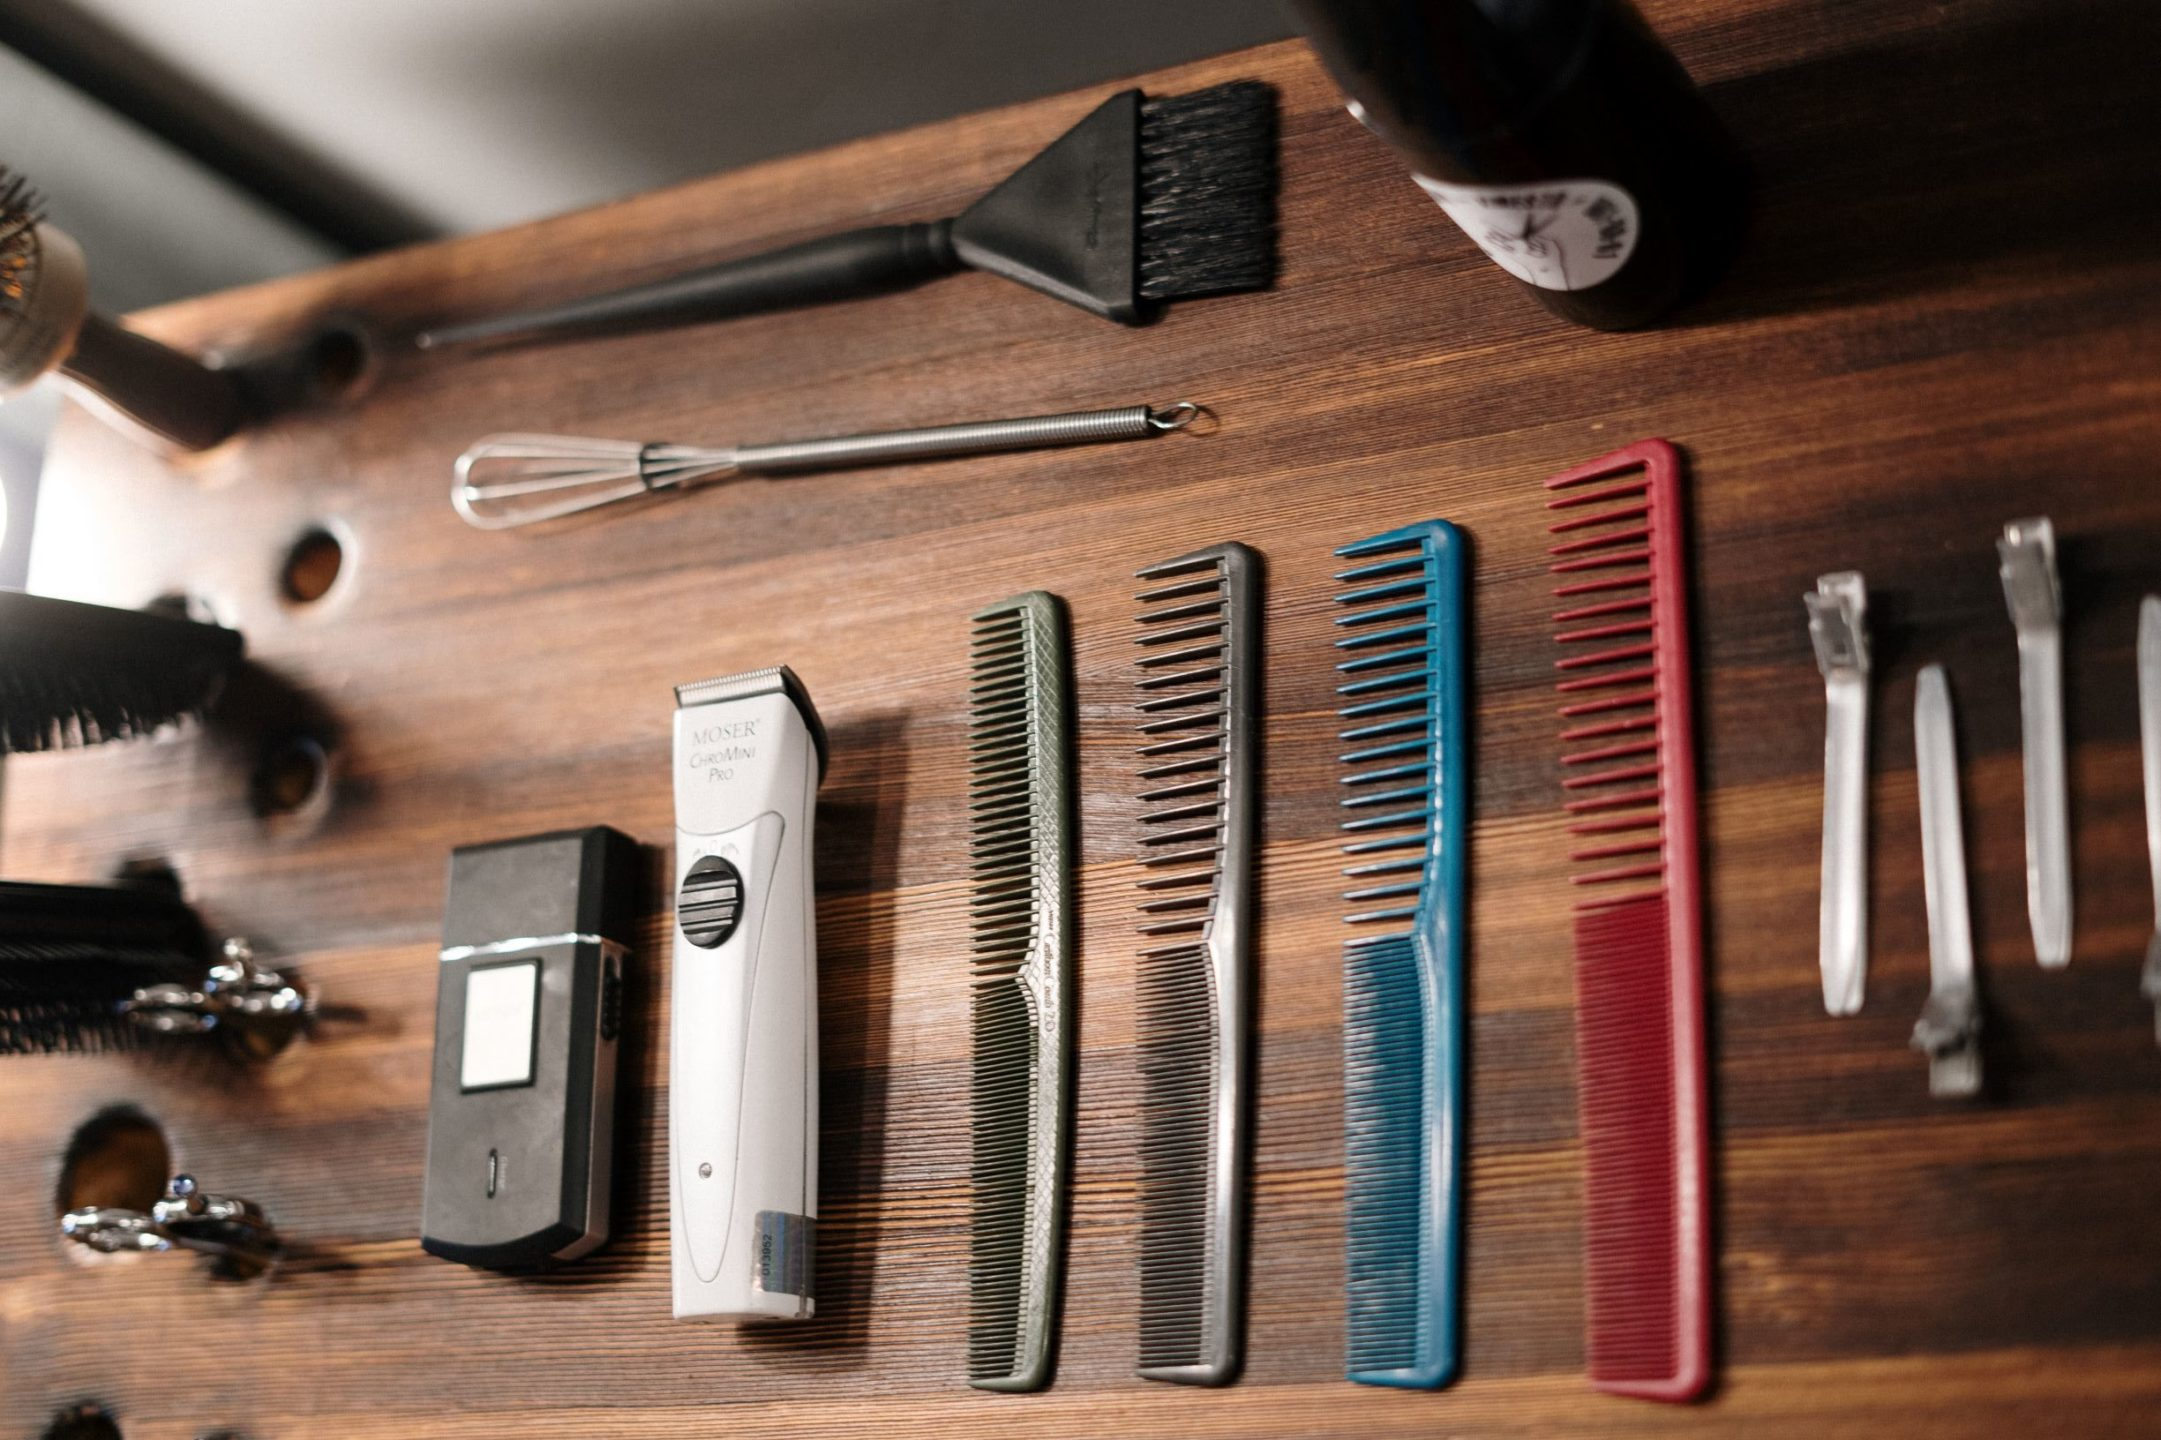 hair salon, haircut tools, scissors